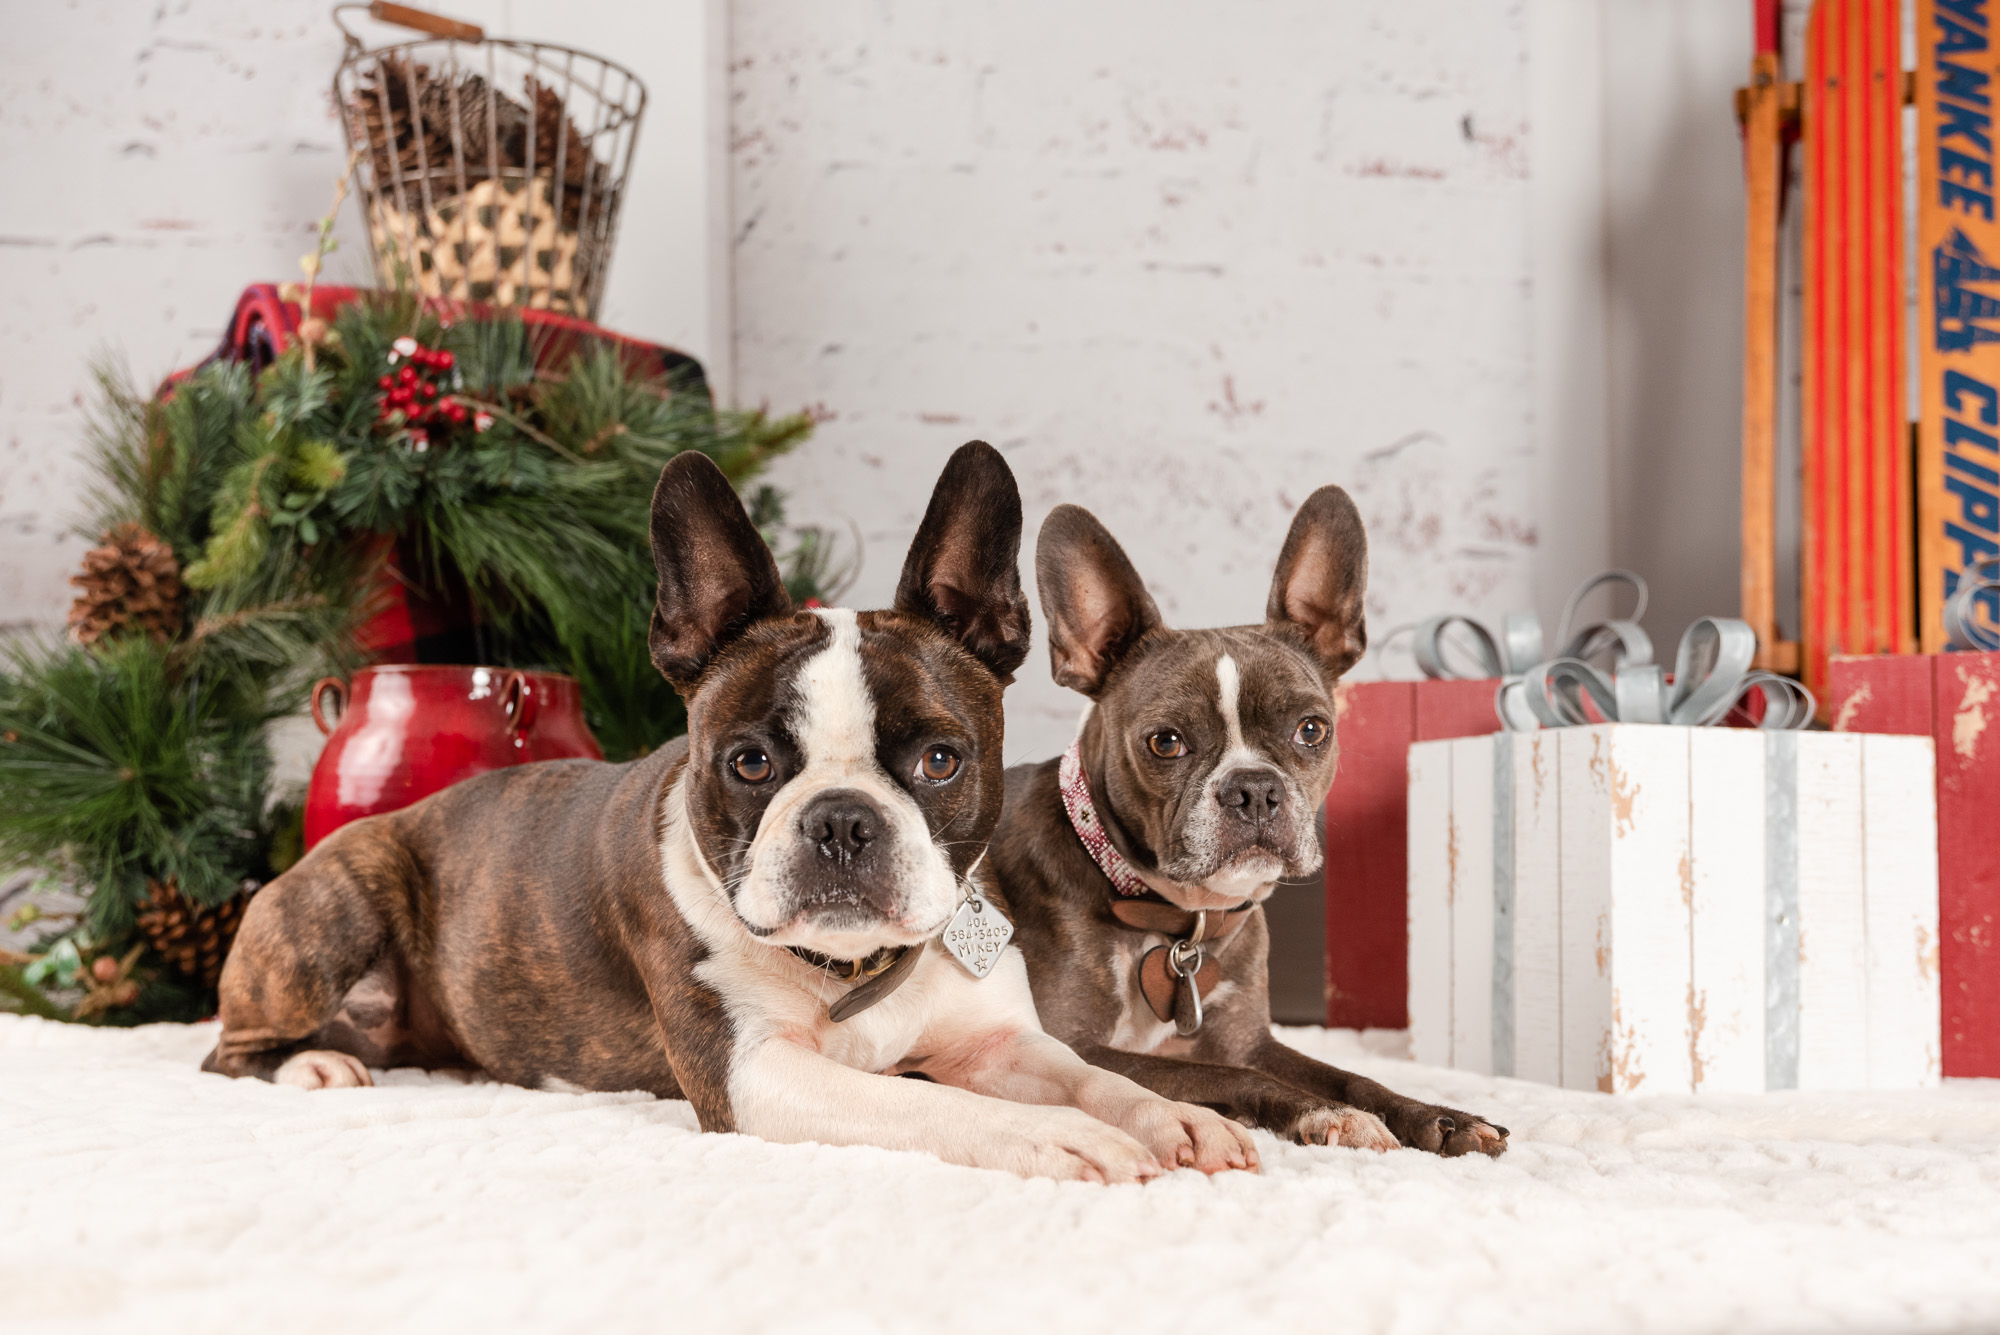 Atlanta pet photographer announces her latest pet portrait event to help fundraise for rescue dogs while giving dog moms beautiful pet photos for the Holidays.